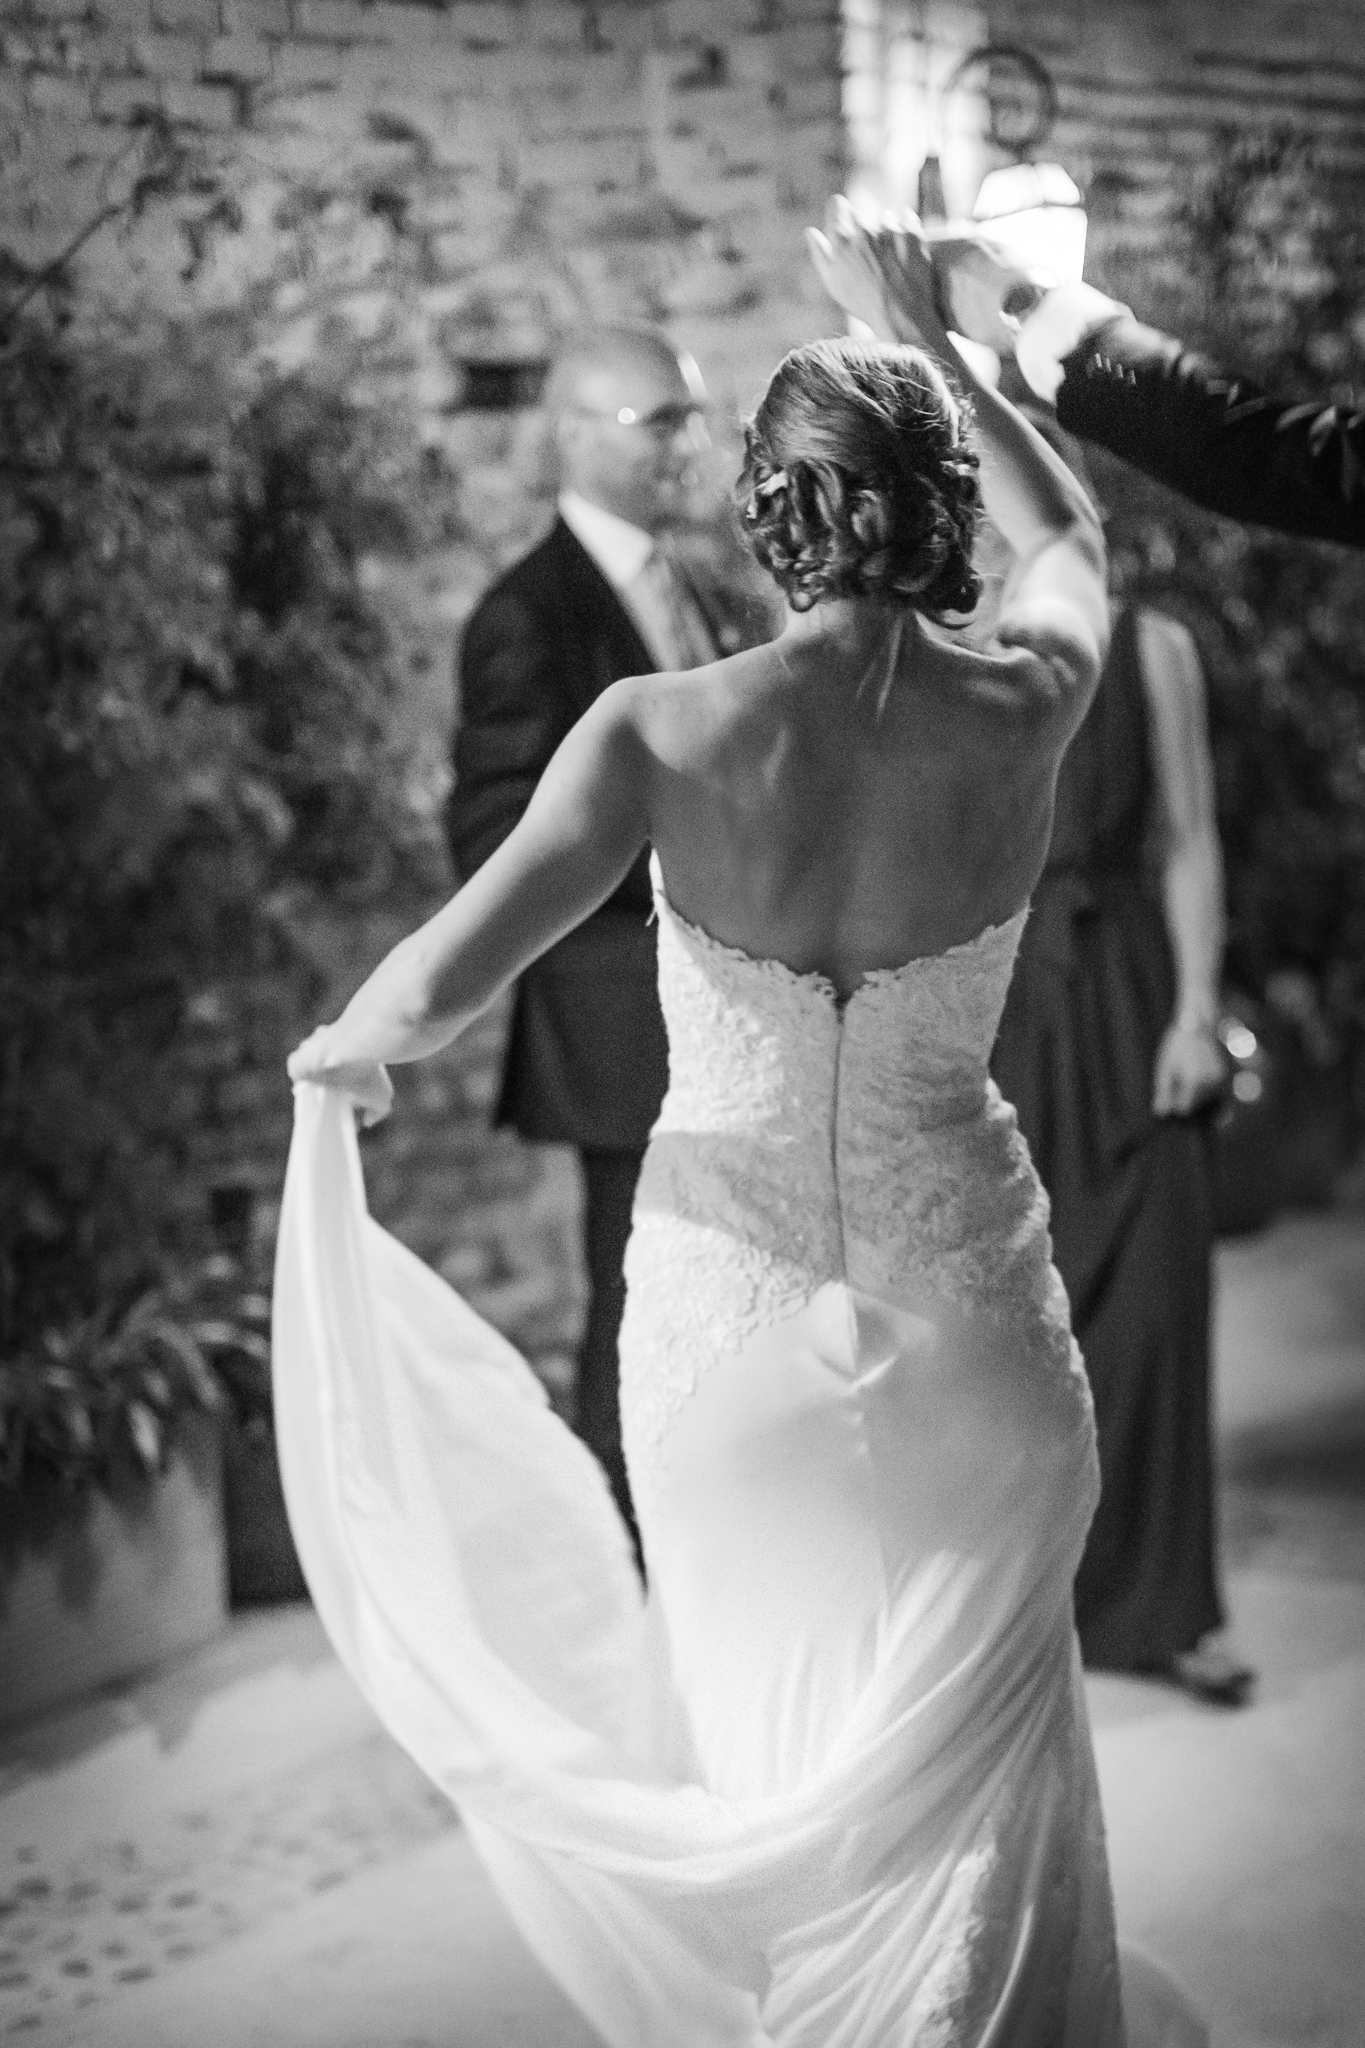 Cathrine+Andreas_Bryllup-210